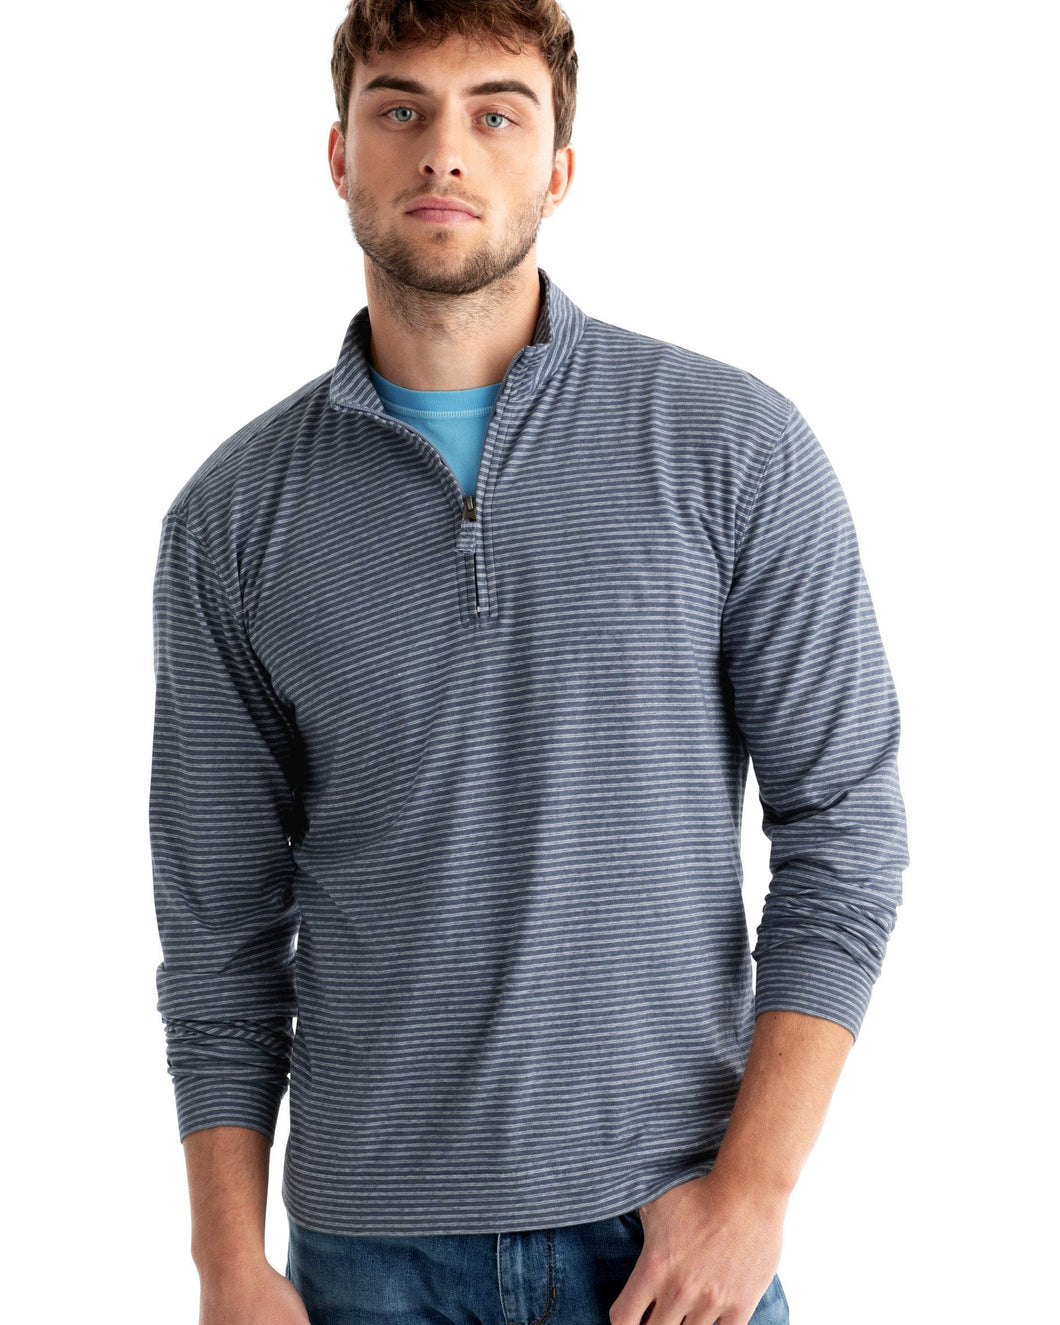 Johnnie-O Men's Harvell Slub Stripe 1/4 Zip Pullover, Light Gray